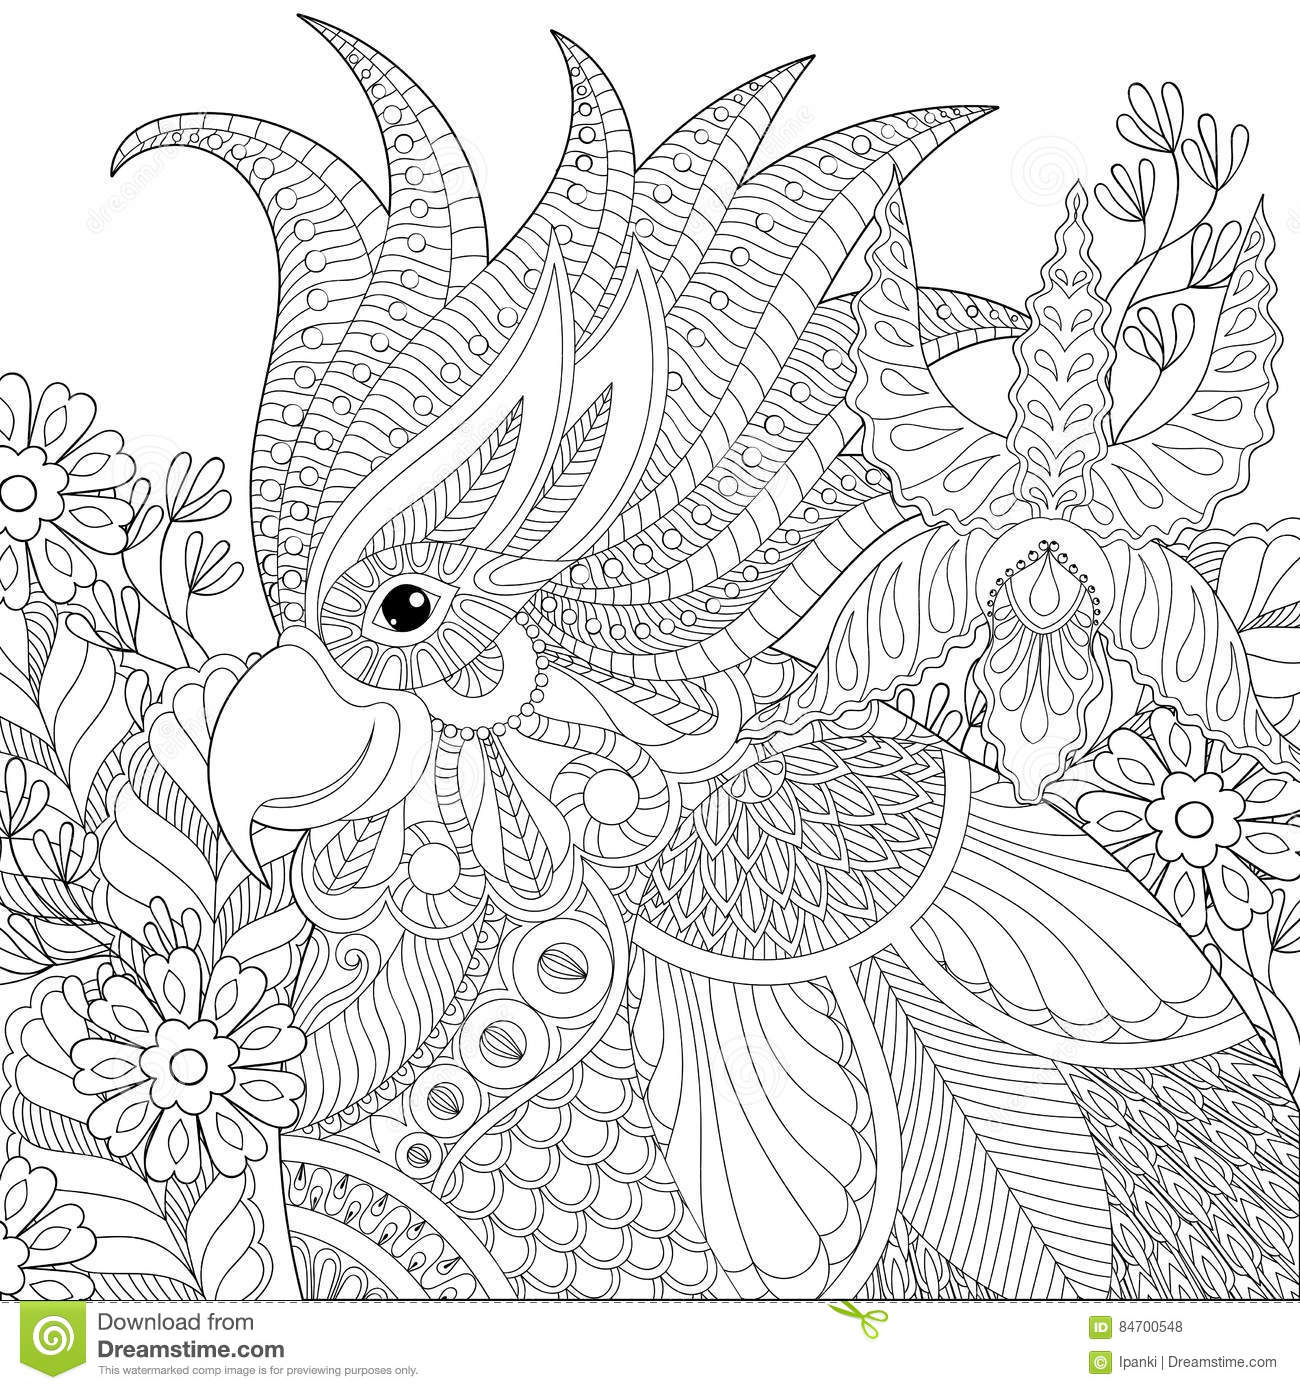 exotic animal coloring pages cat face in exotic design coloring page print color fun exotic coloring pages animal